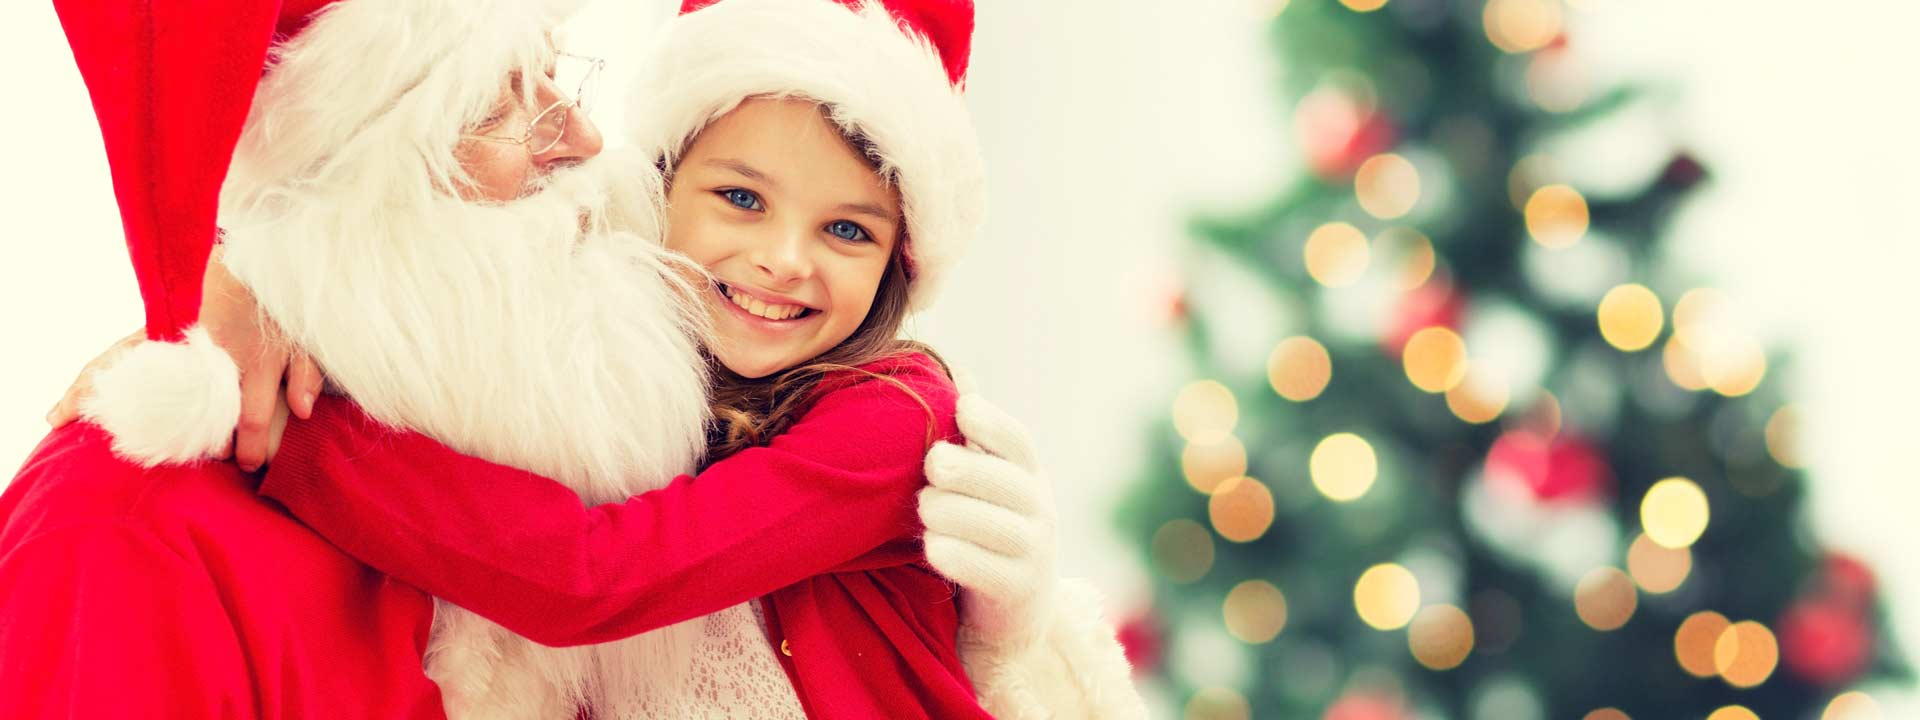 Merry Myrtle Beach Christmas 2017 - Events & Parades